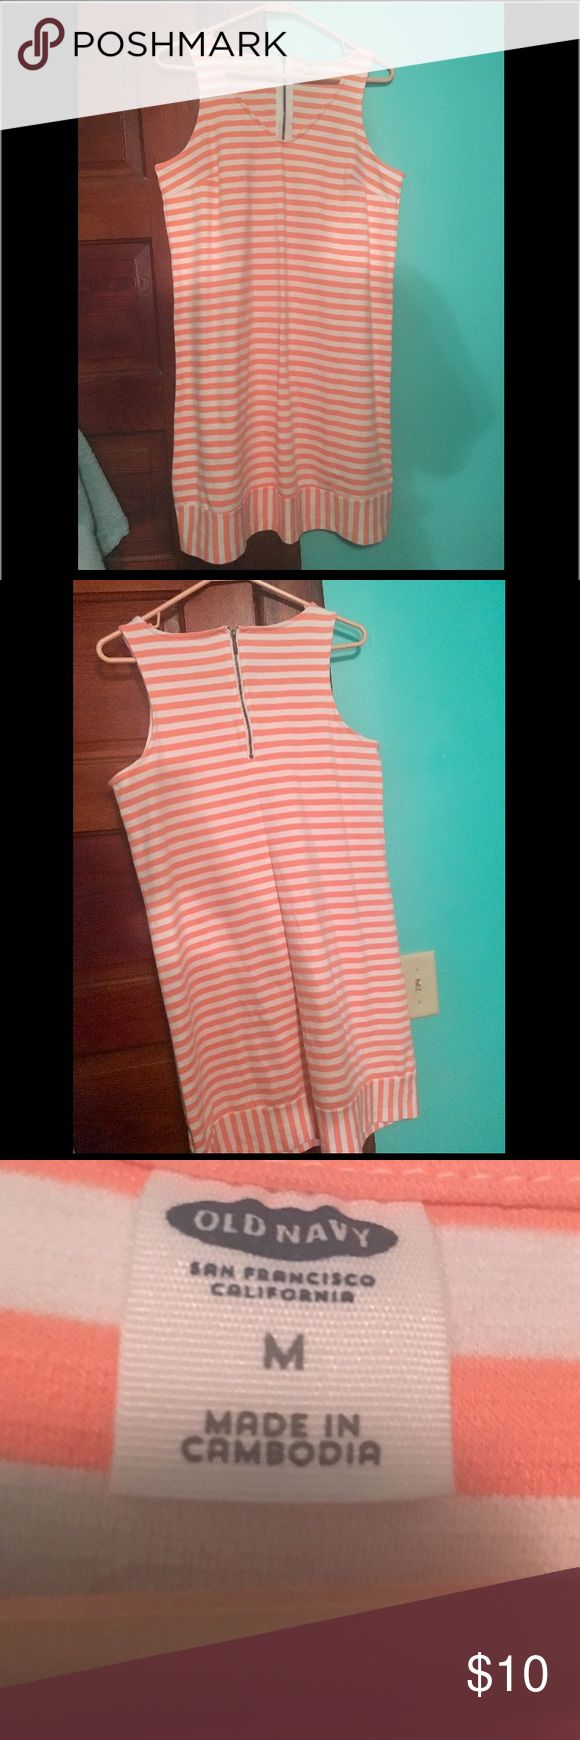 Old Navy Striped Dress Worn once, great condition. Old Navy Dresses